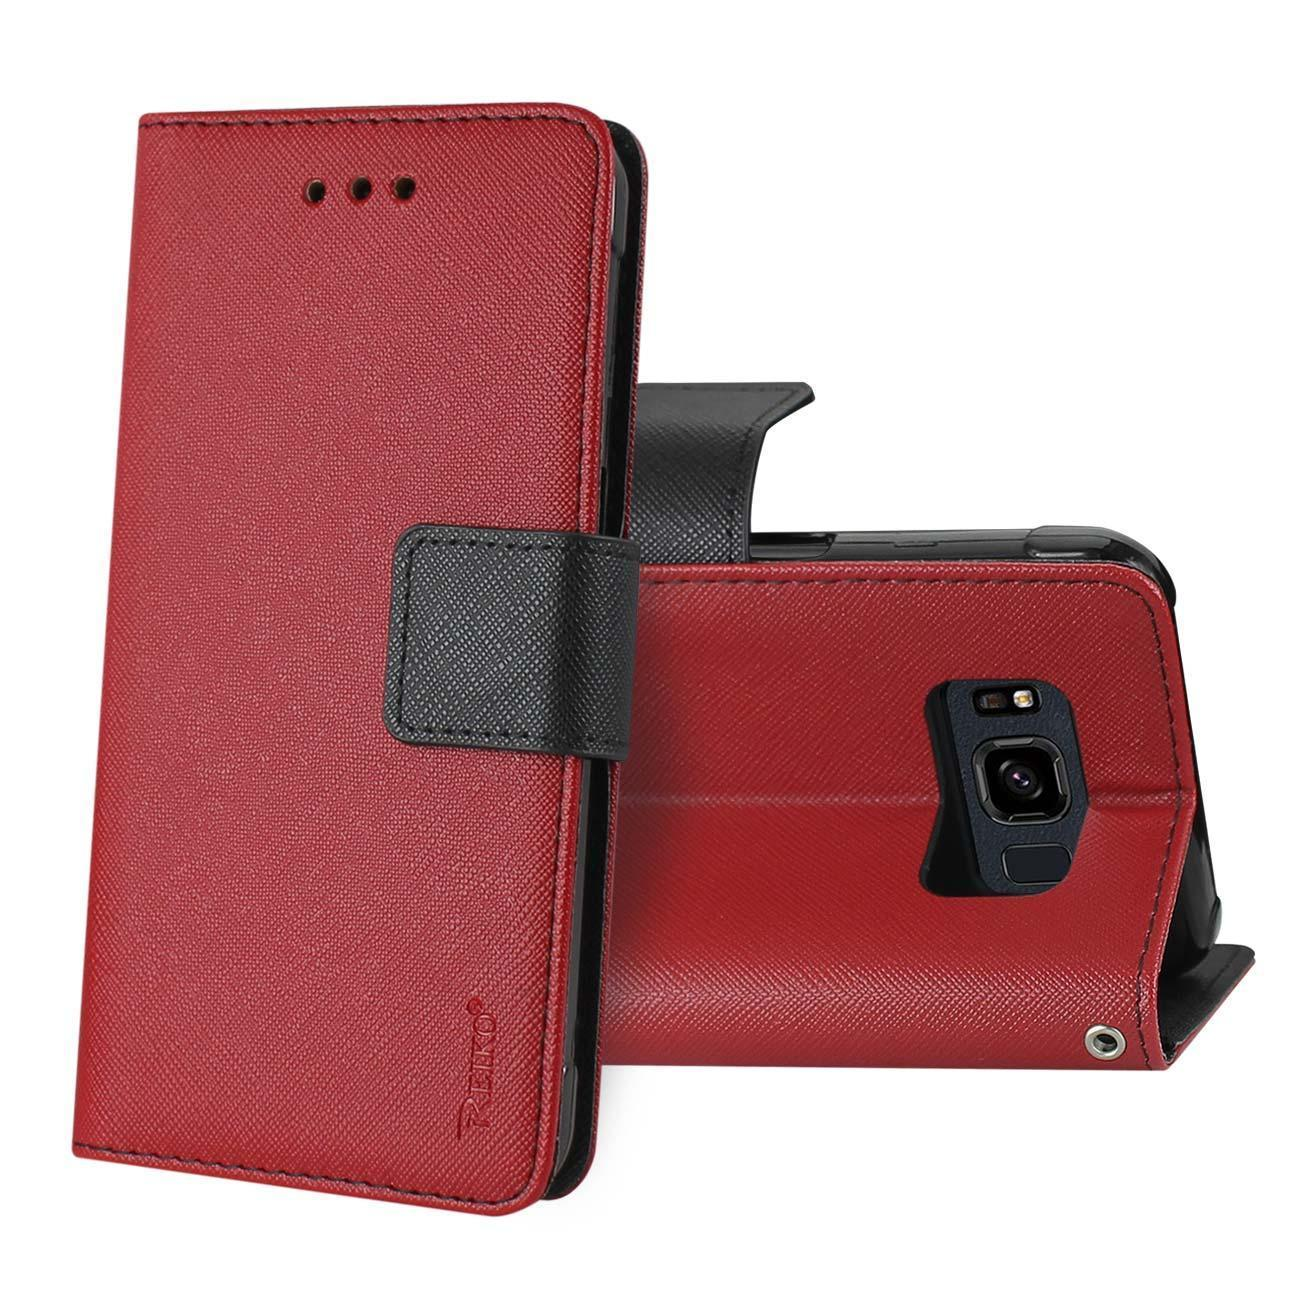 Reiko Samsung Galaxy S8 Active 3-in-1 Wallet Case In Red